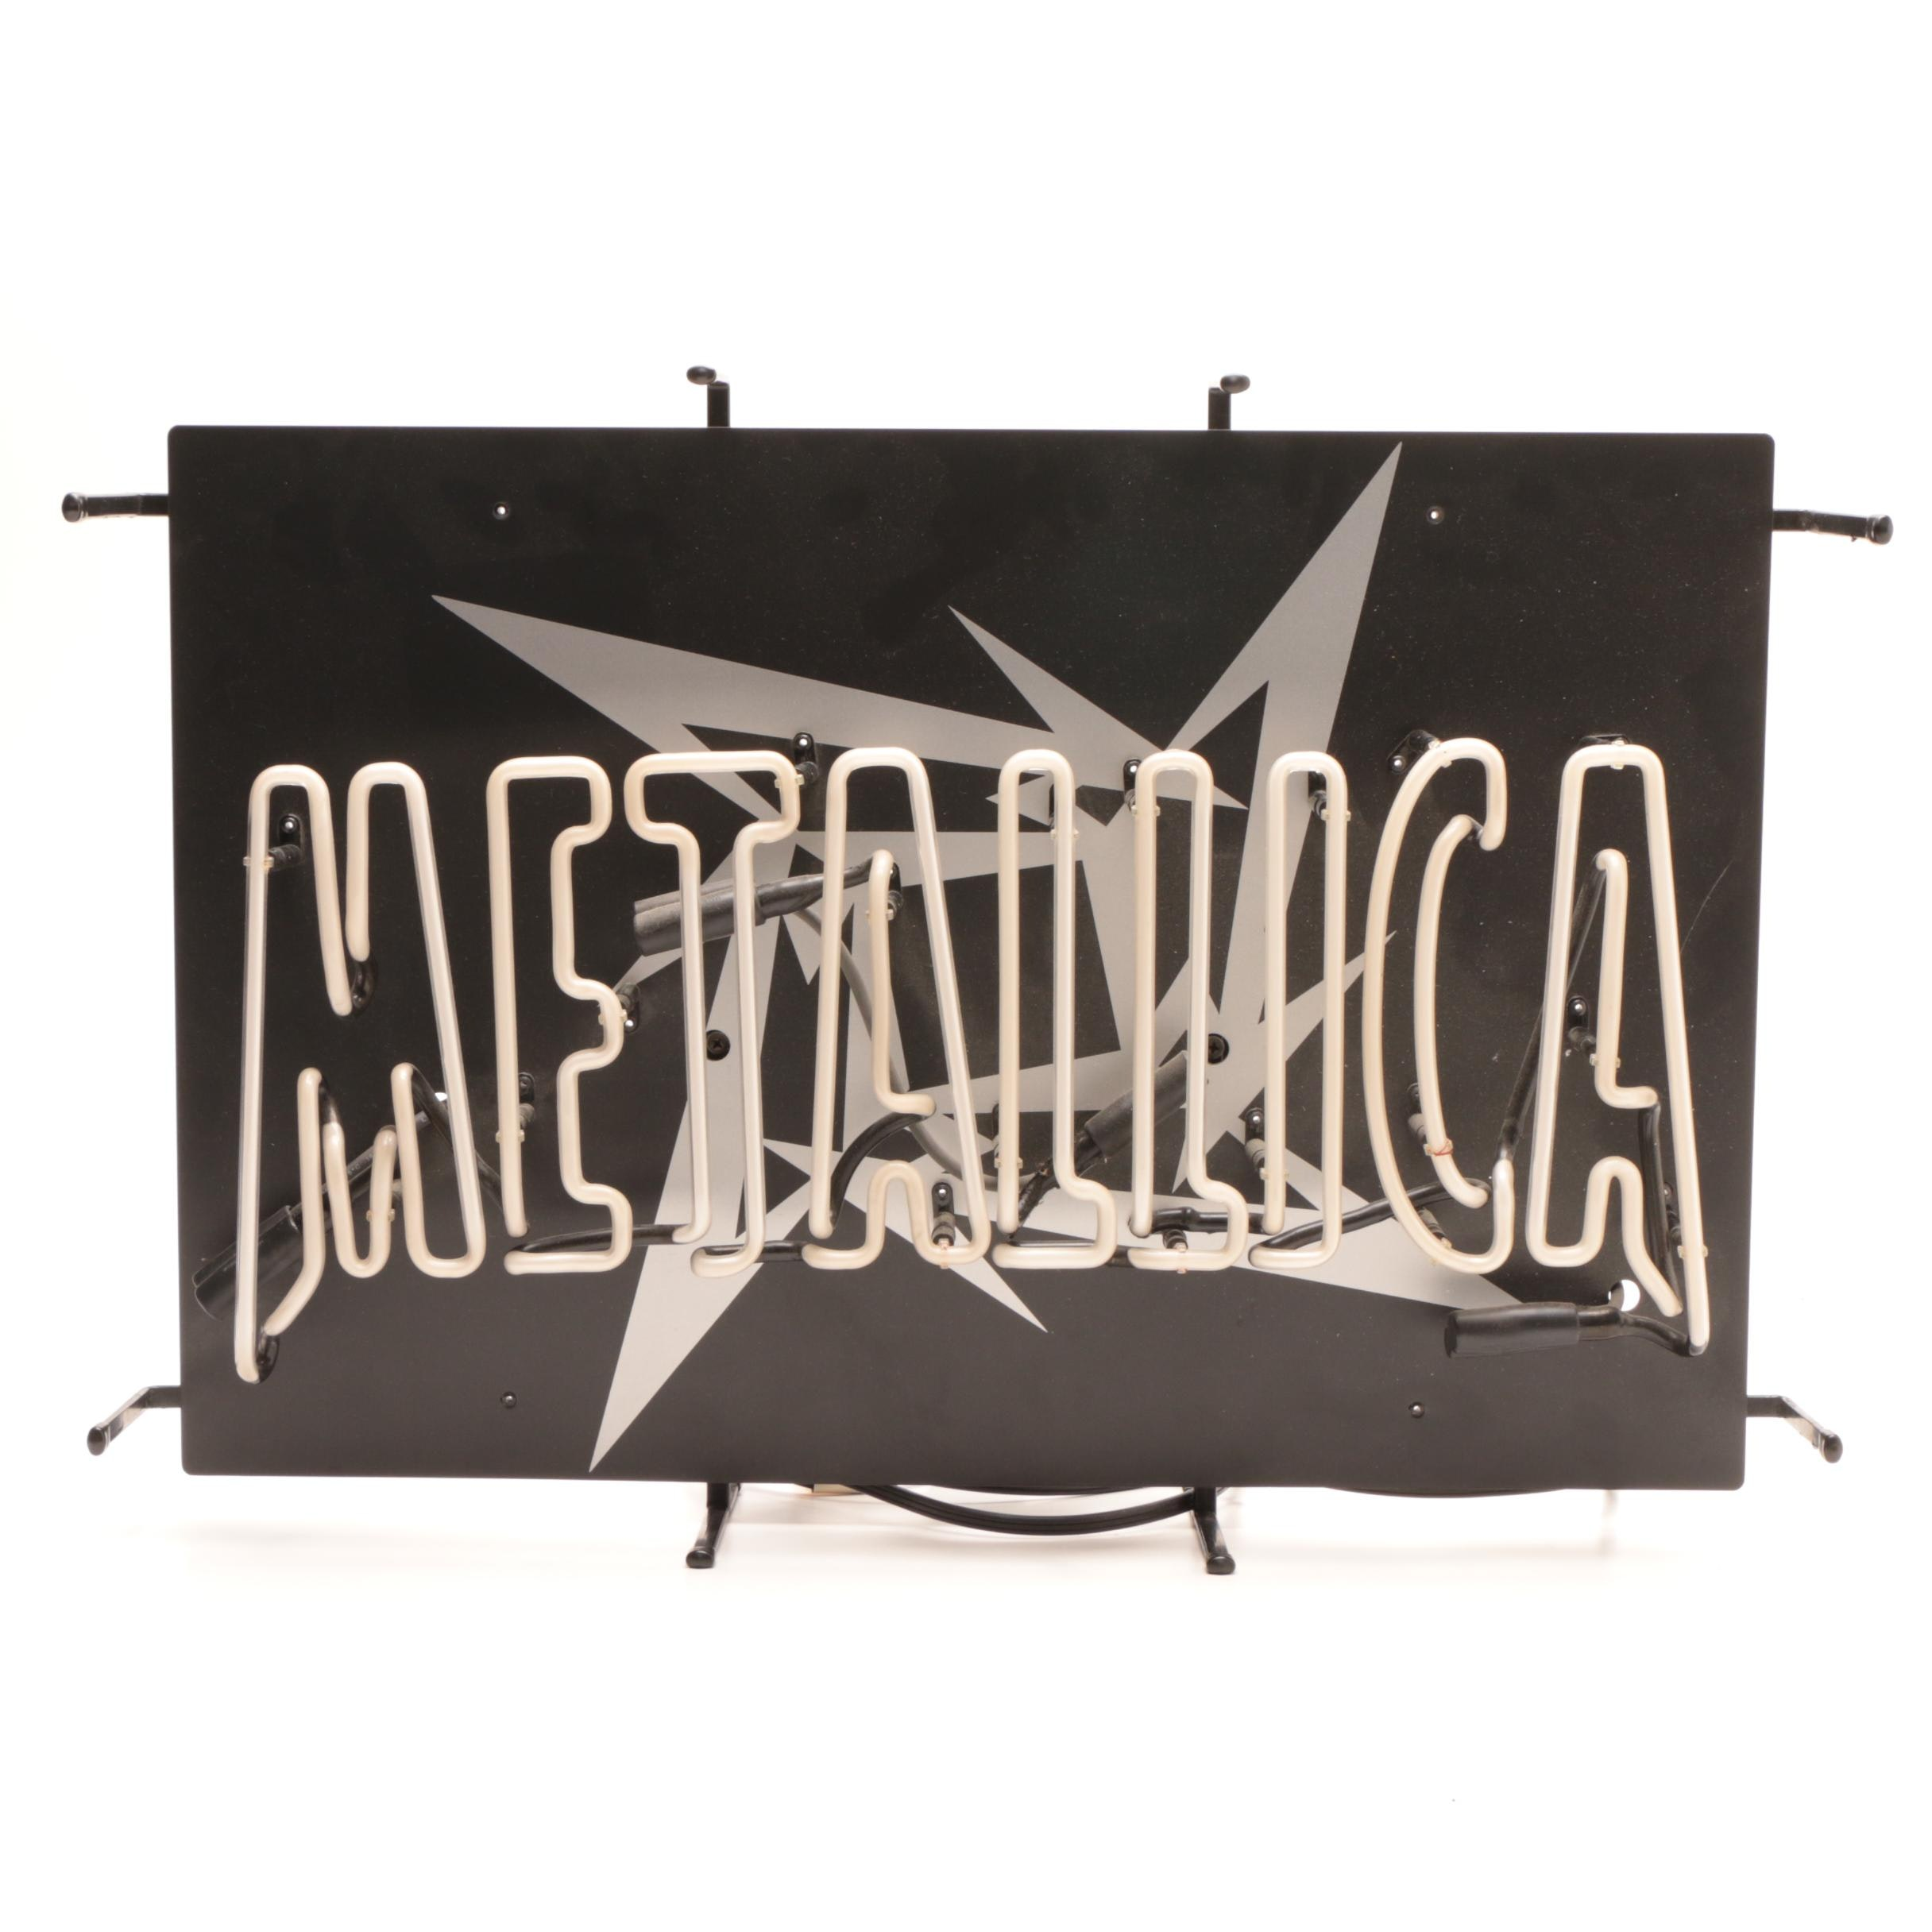 1996 Metallica Neon Light Sign